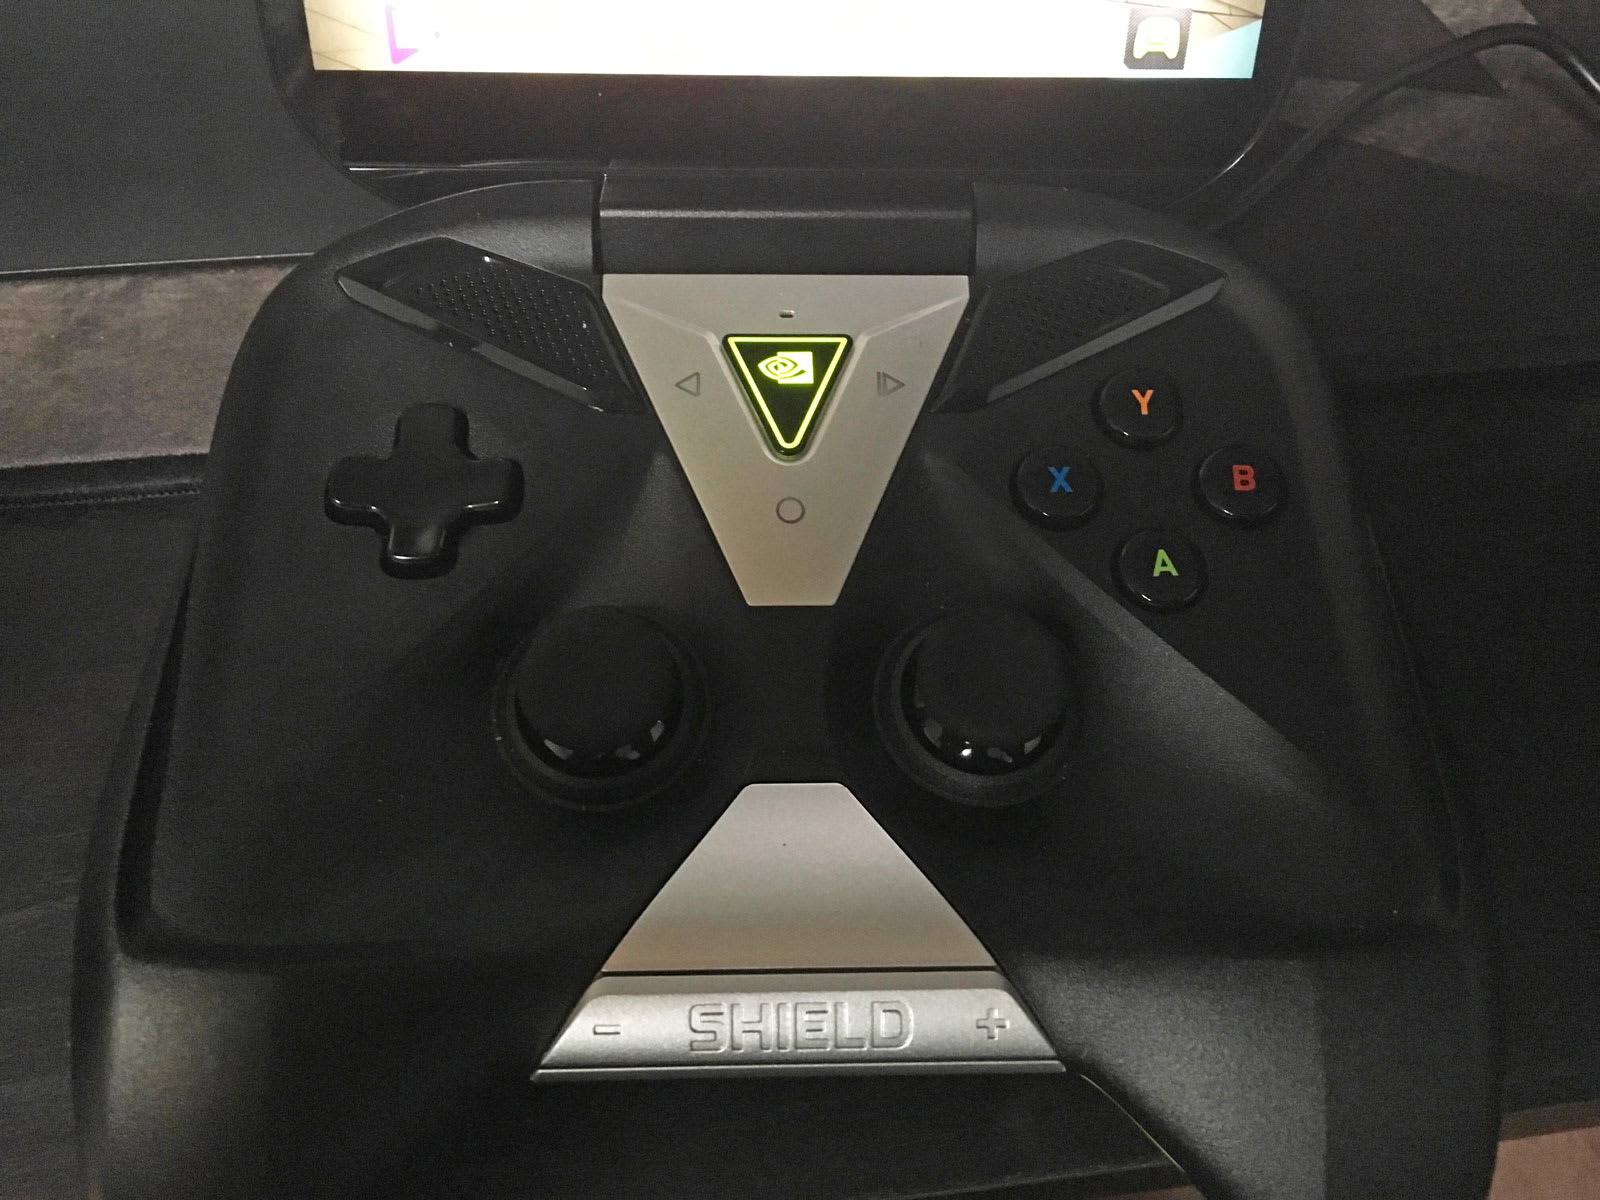 Nvidia Shield Tv 2019 Reddit